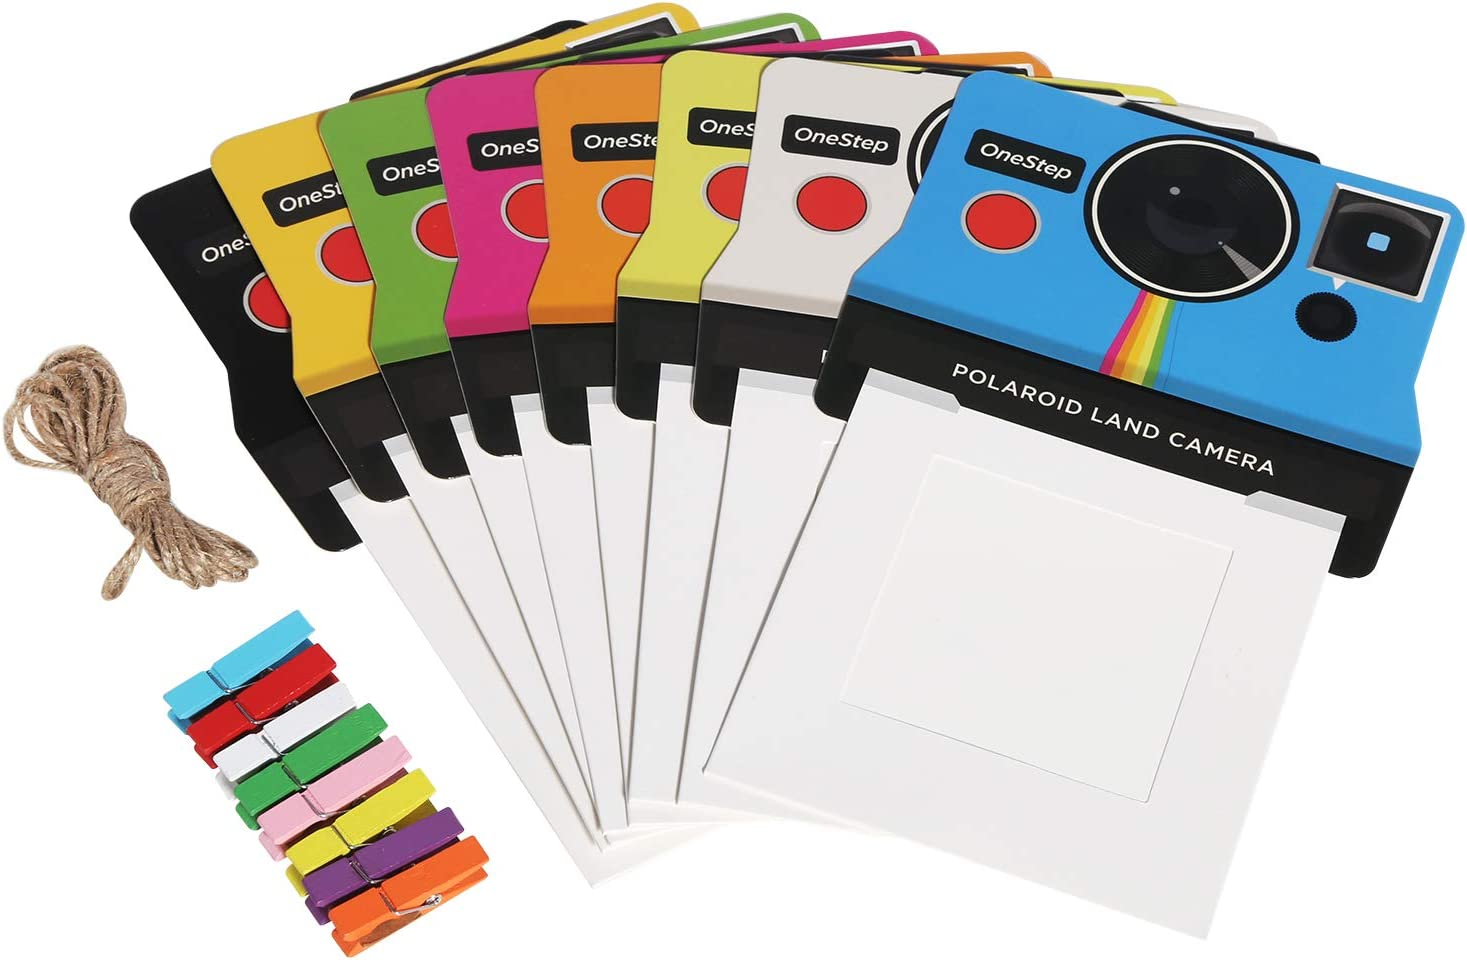 Zink Colorful Vintage Camera Photo Frames for 2x3 Zink Paper Compatible with Kodak, Lifeprint, Polaroid, HP, Canon, Fujifilm